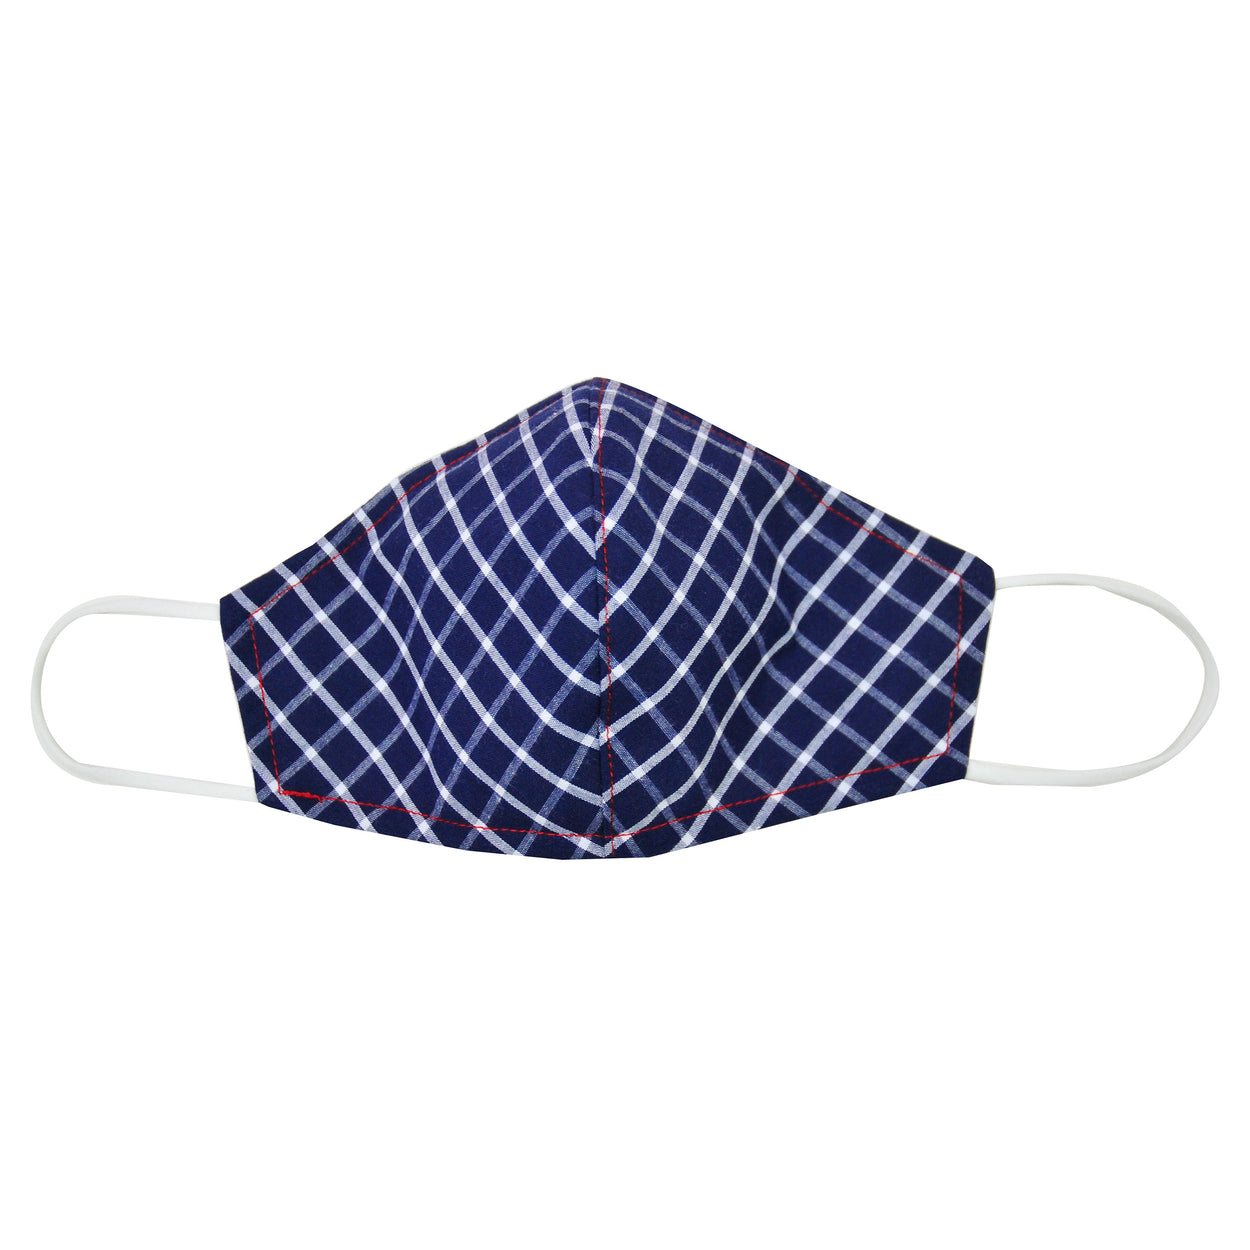 cotton face mask big navy check